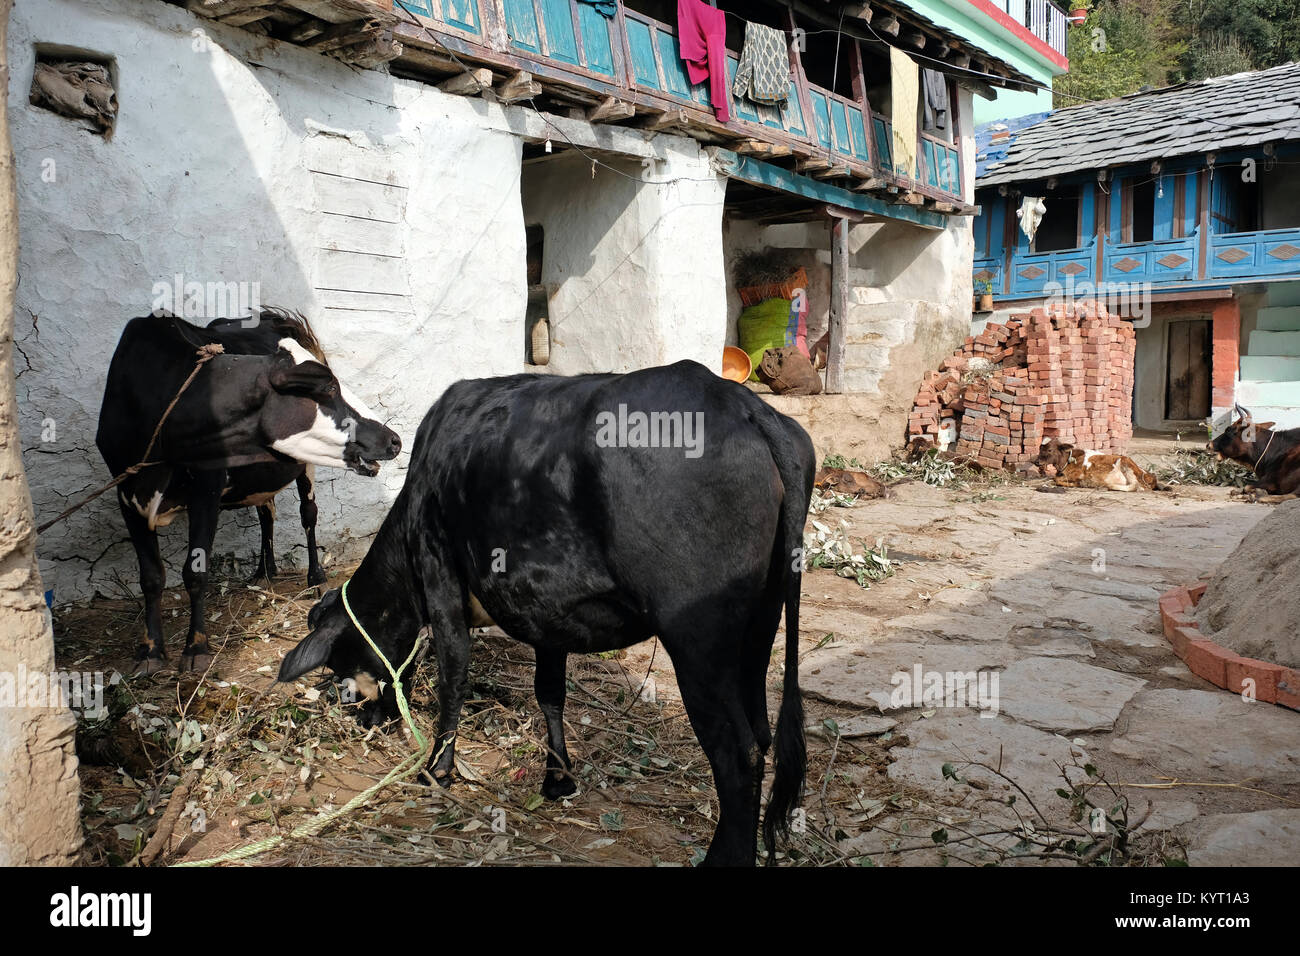 Cattle in the yard of a smallholding in the Himalayan foothills of Northern India - Stock Image